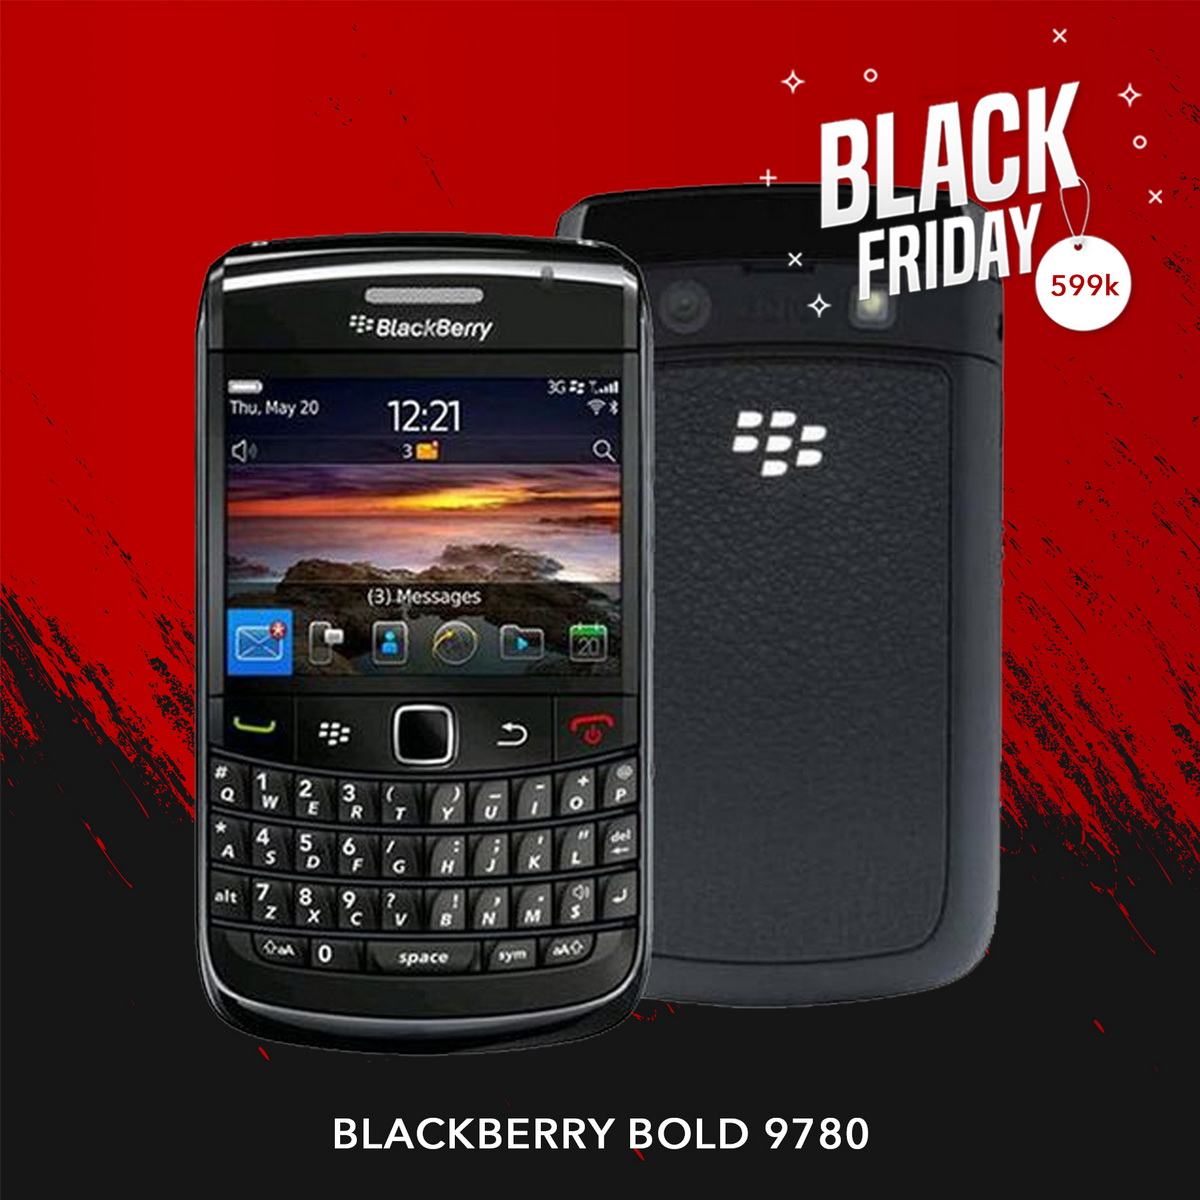 Blackberry Bold 9780 |  Black Friday